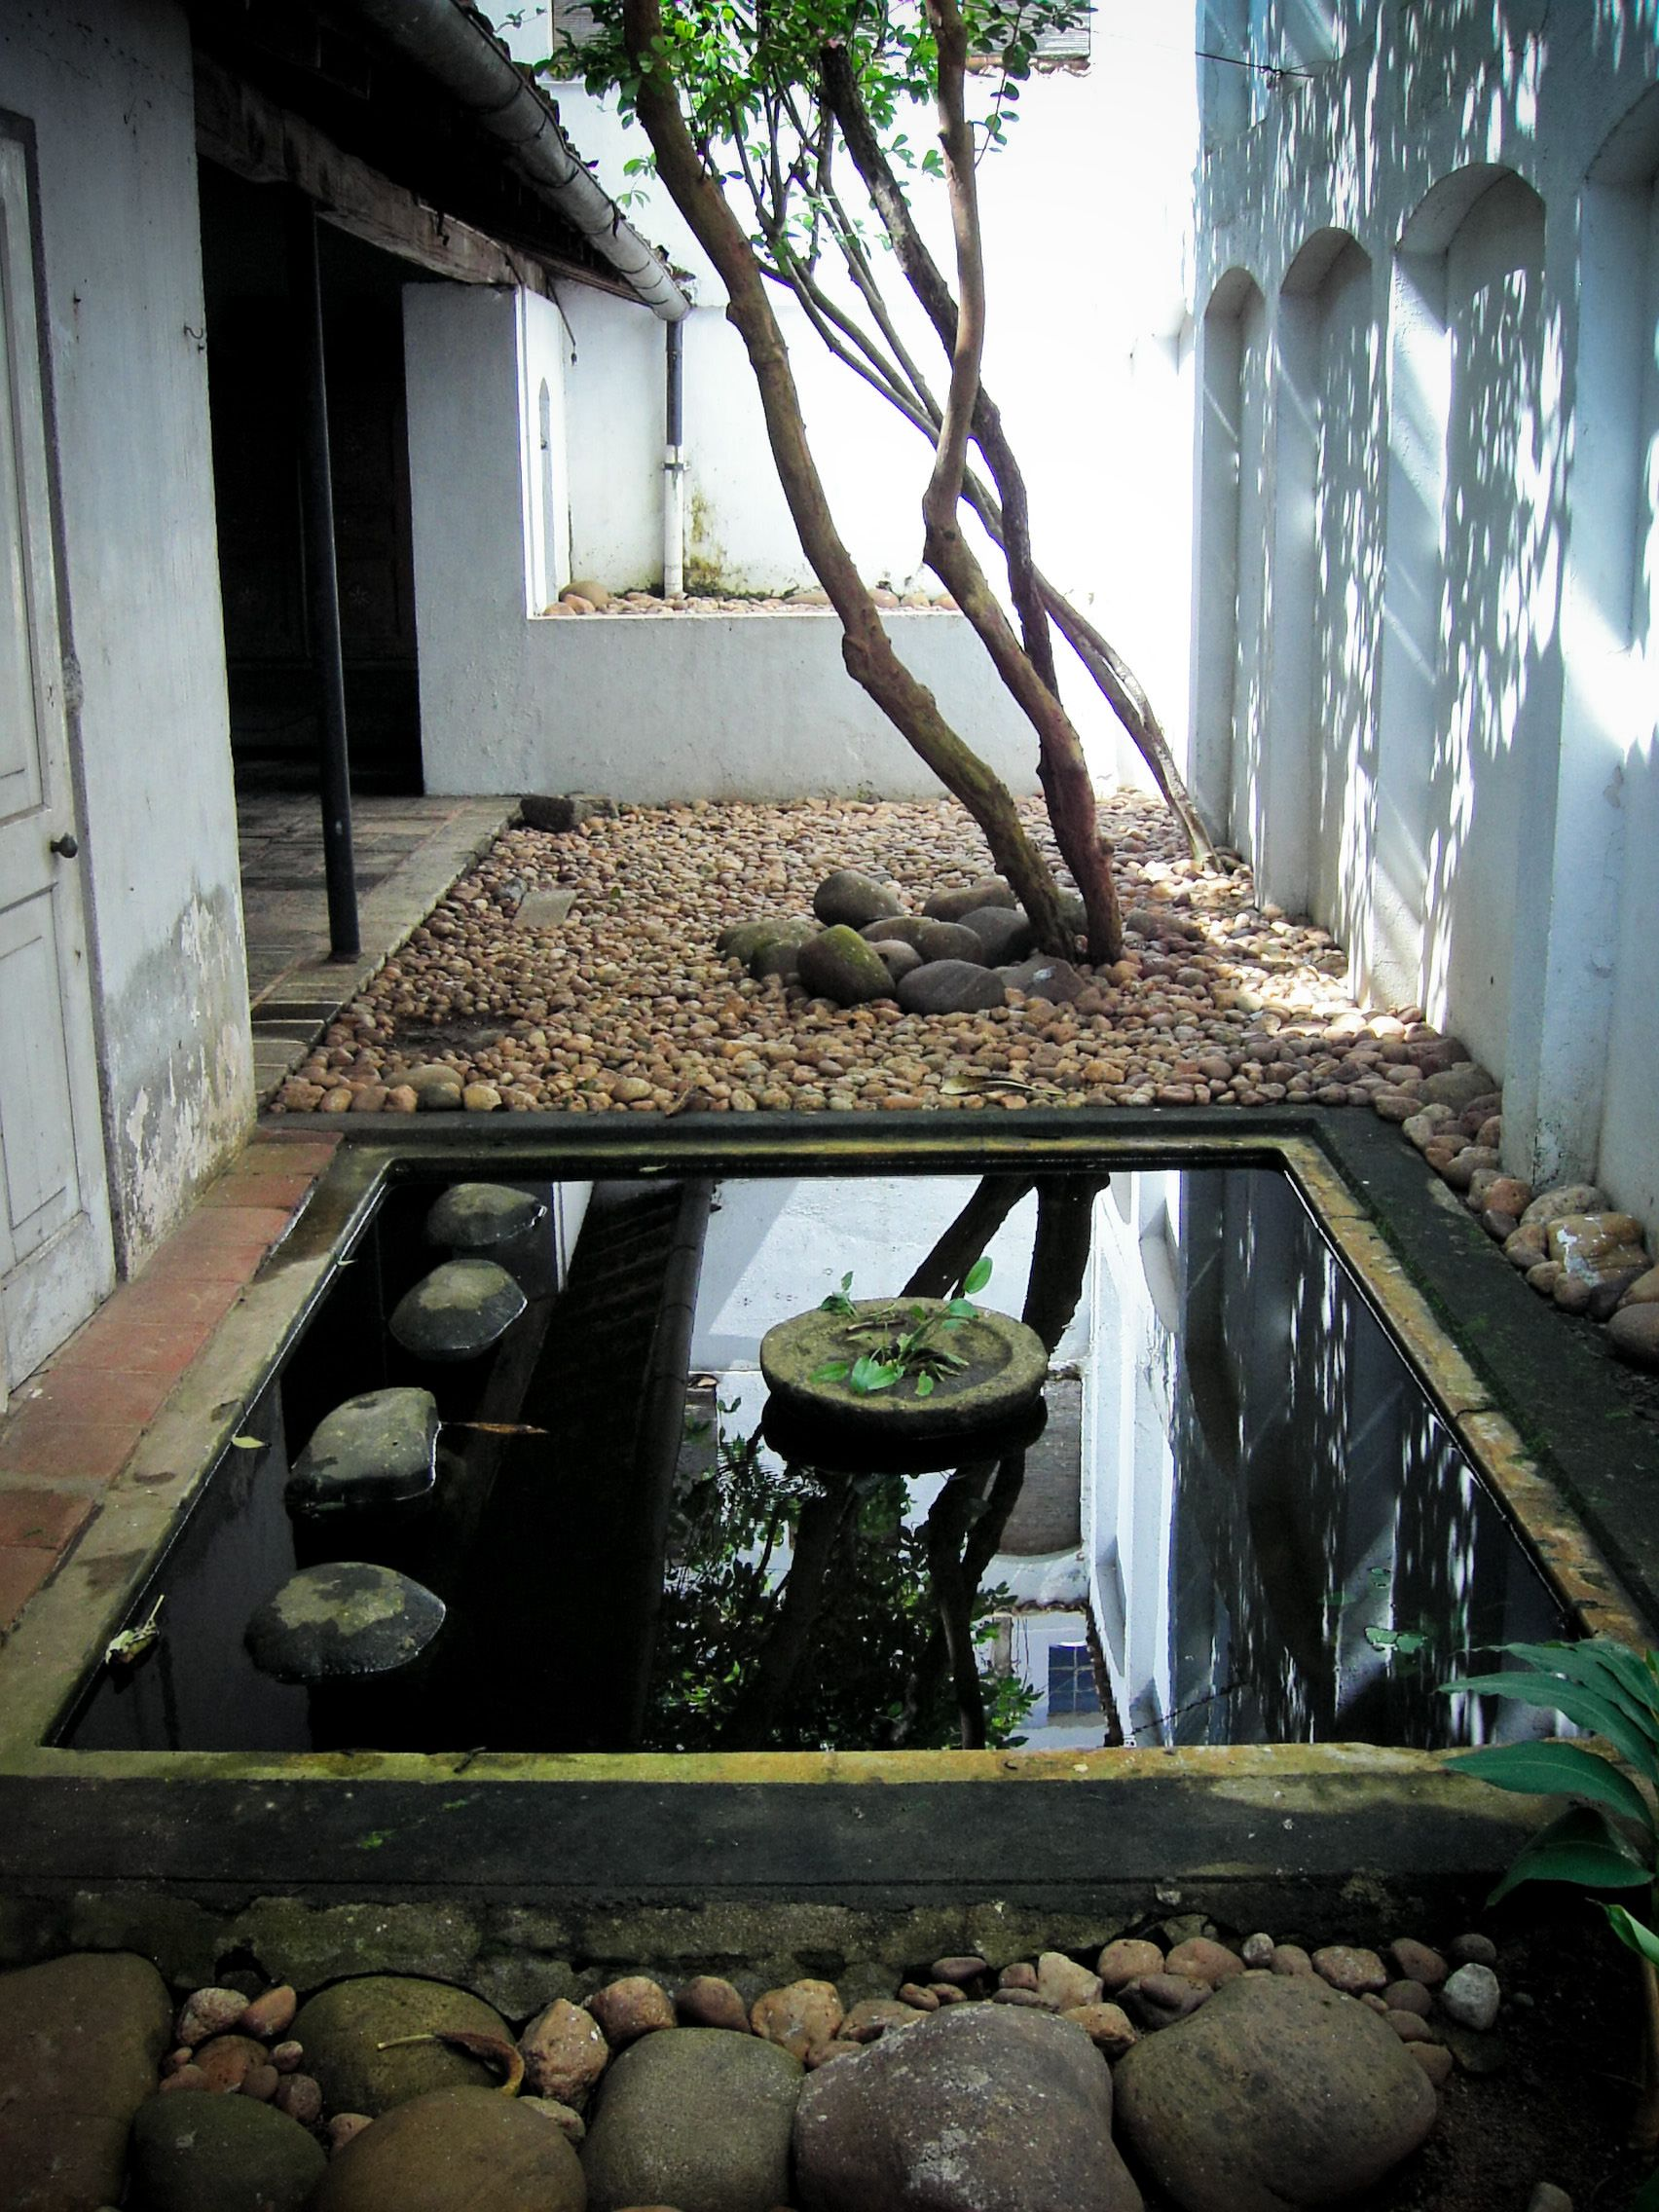 Ena de silva house 1962 geoffrey bawa colombo sri lanka for Courtyard designs in sri lanka